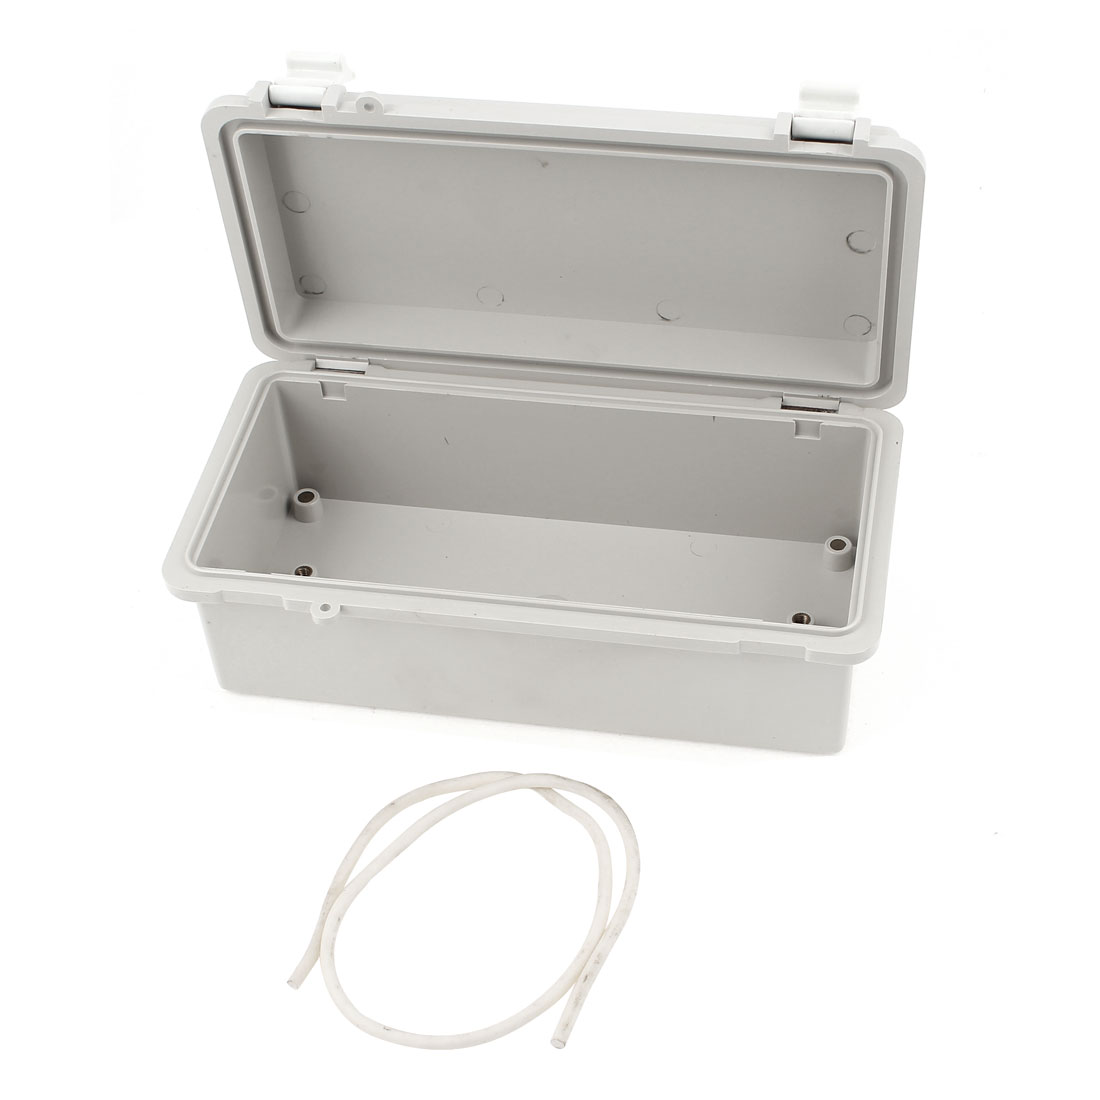 Dustproof IP65 Rectangle Gray Plastic Project Enclosure Case DIY Electronic Wiring Junction Box 185x85x75mm